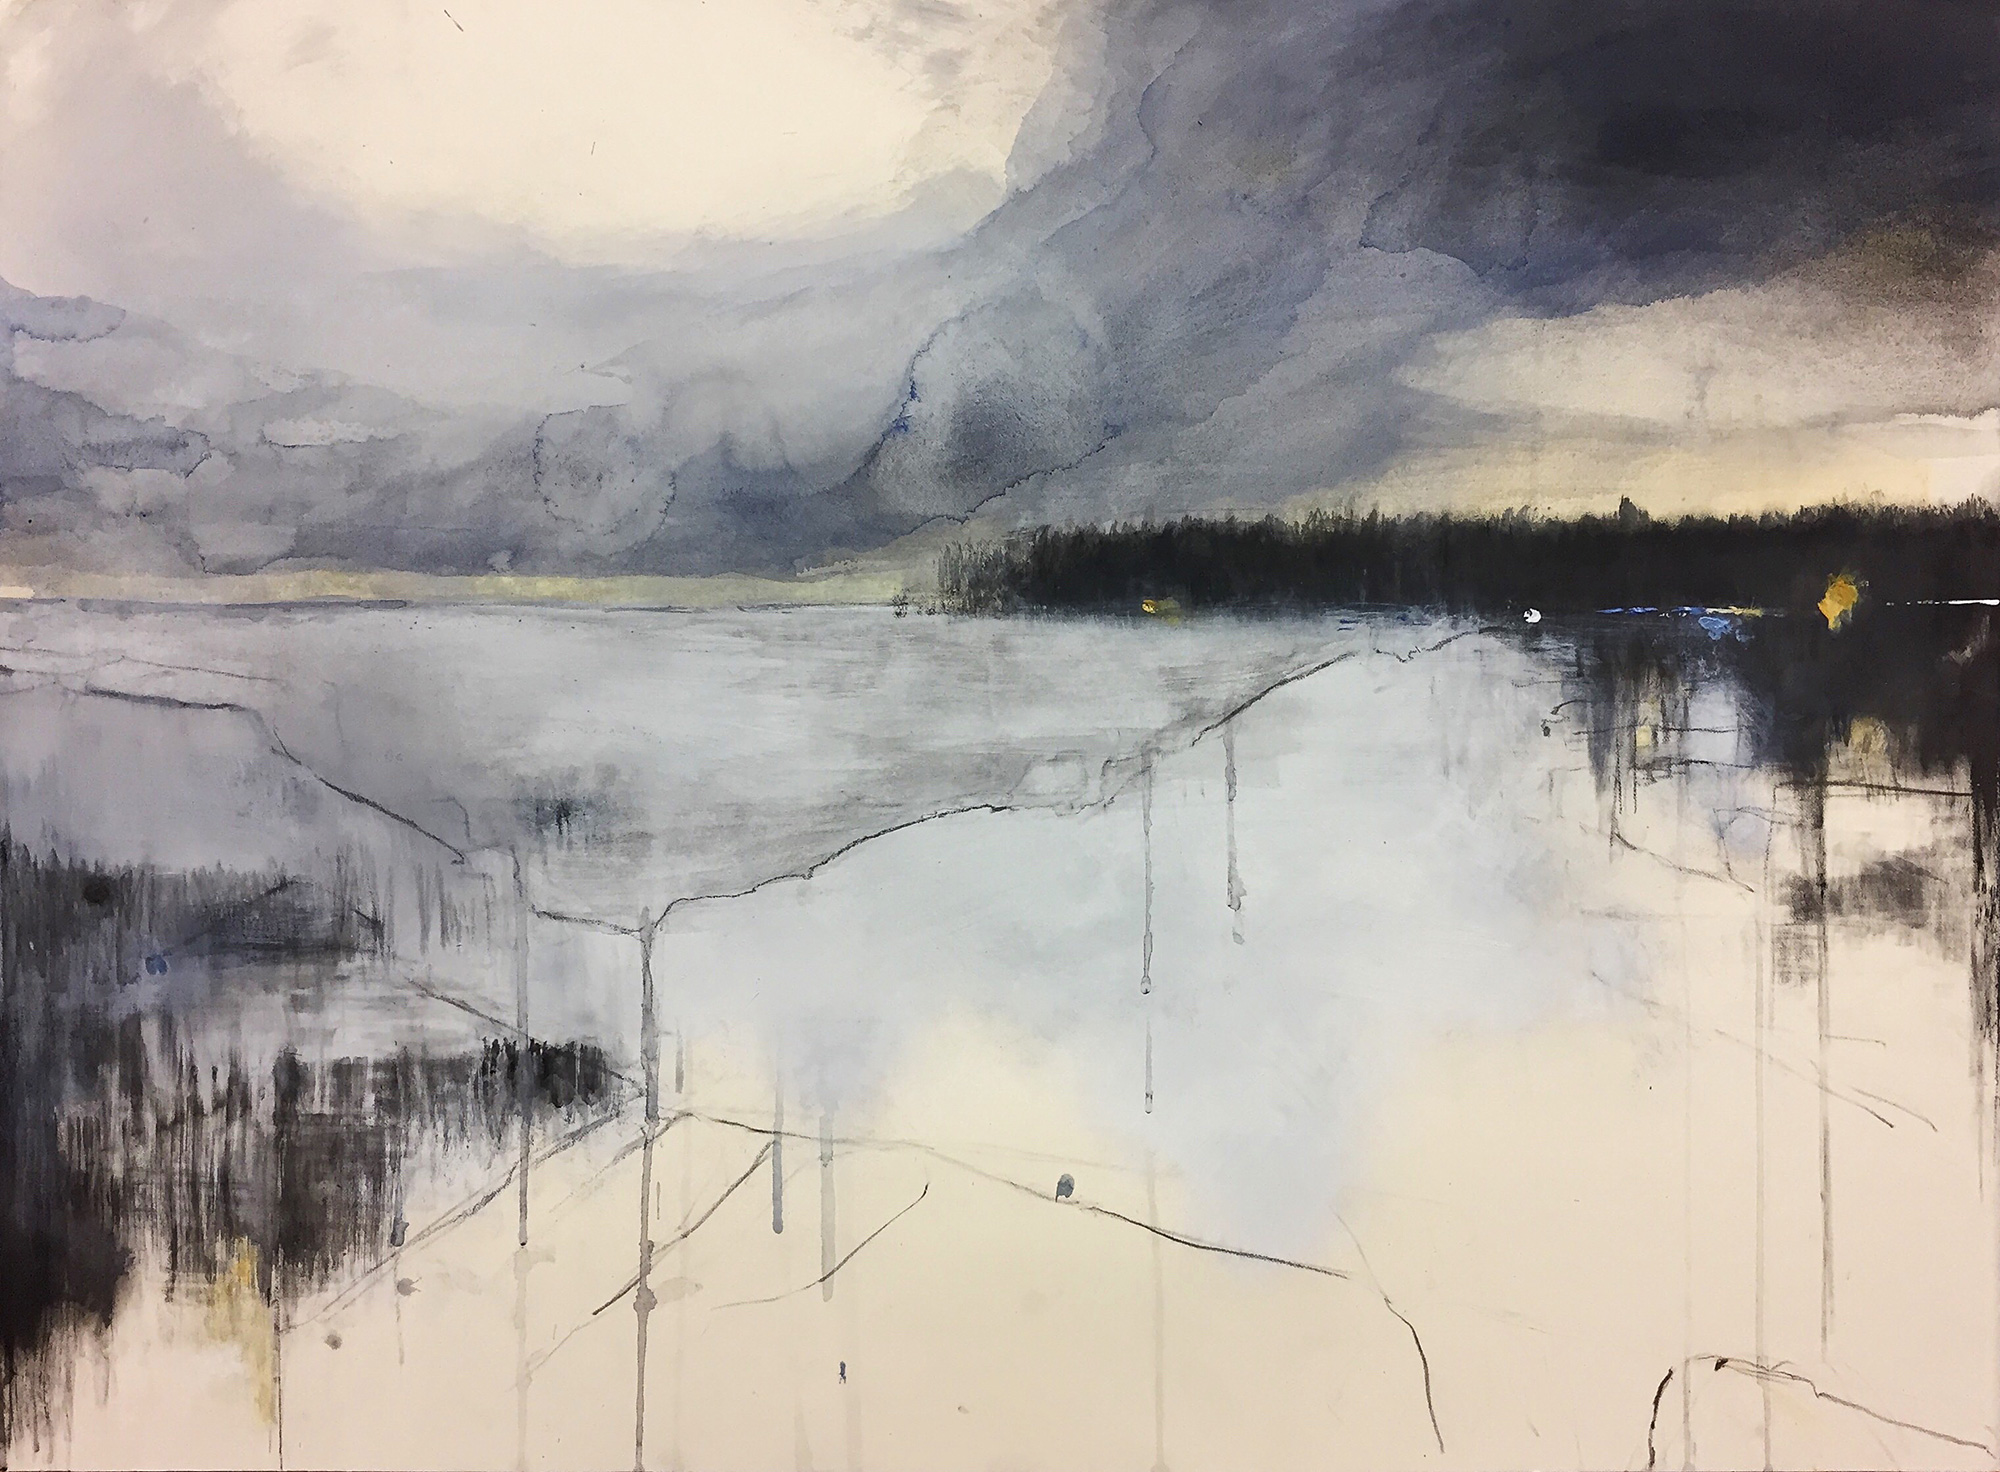 'Cove-in-Winter'.-2017.-Graphite,-oil,-watercolour-and-gesso-on-paper.-57-x-77cm.-SOLD.jpg